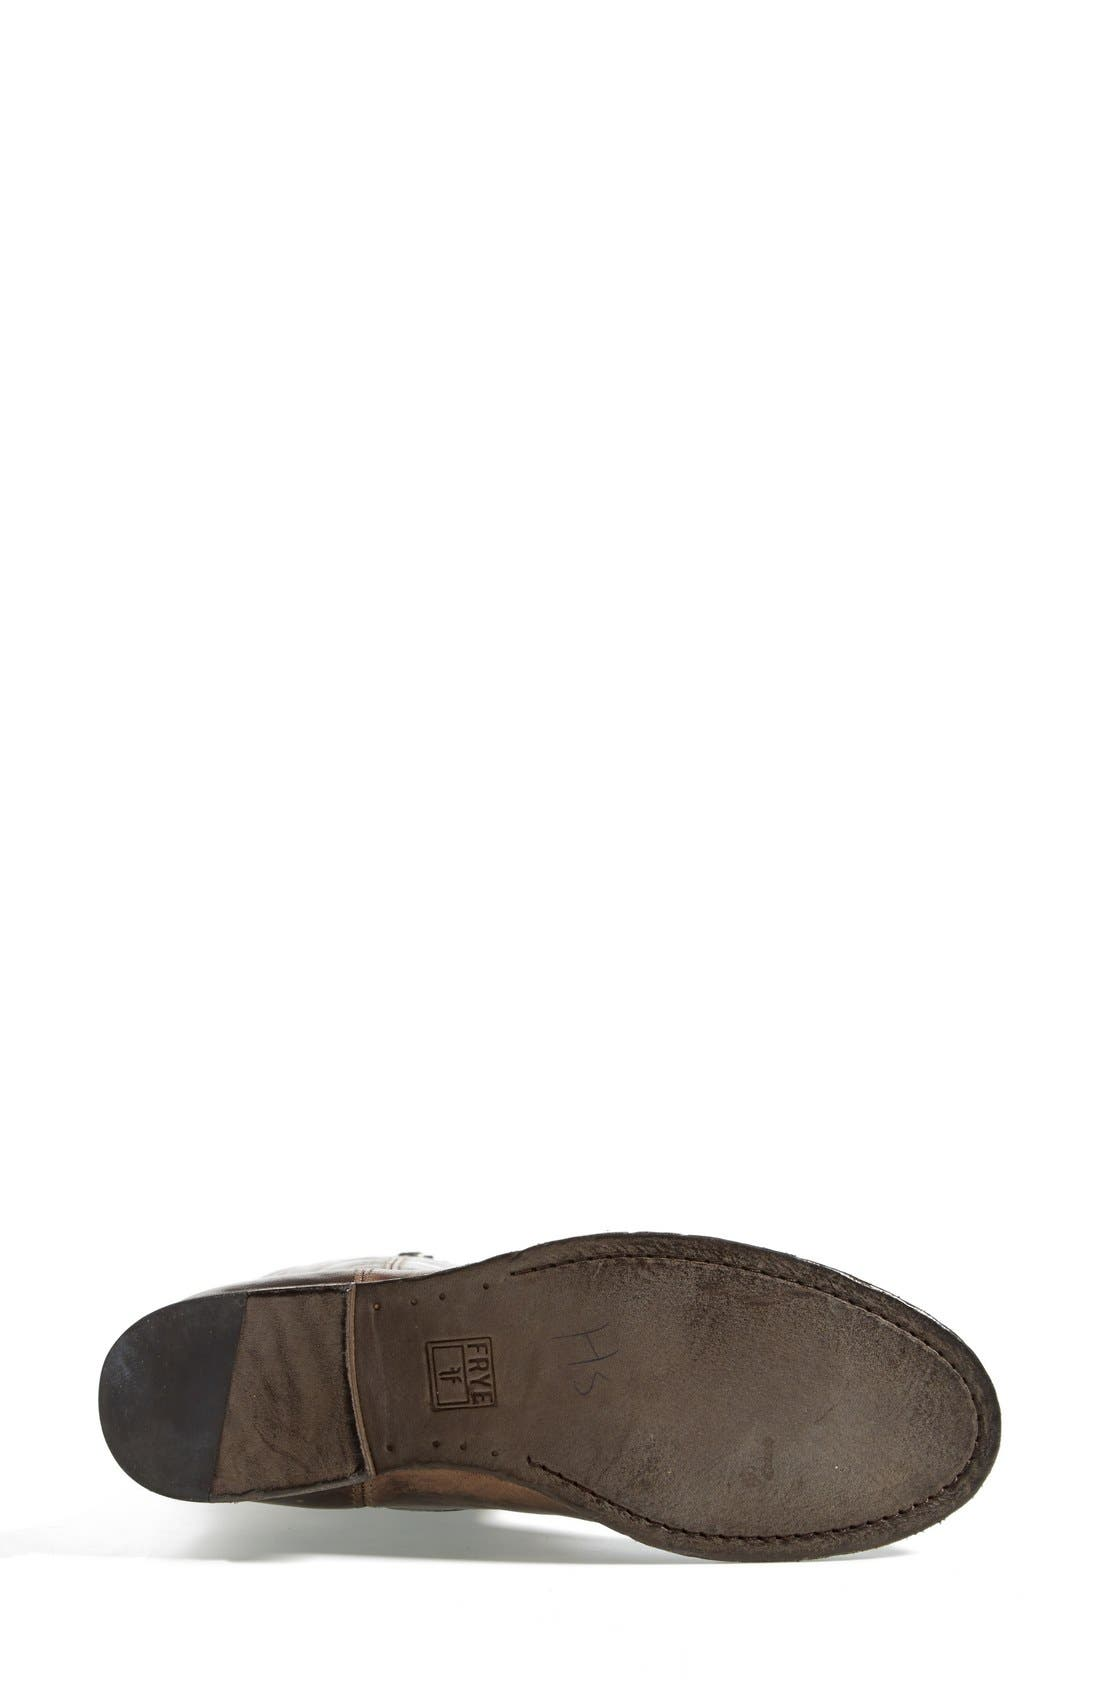 'Melissa Button' Leather Riding Boot,                             Alternate thumbnail 78, color,